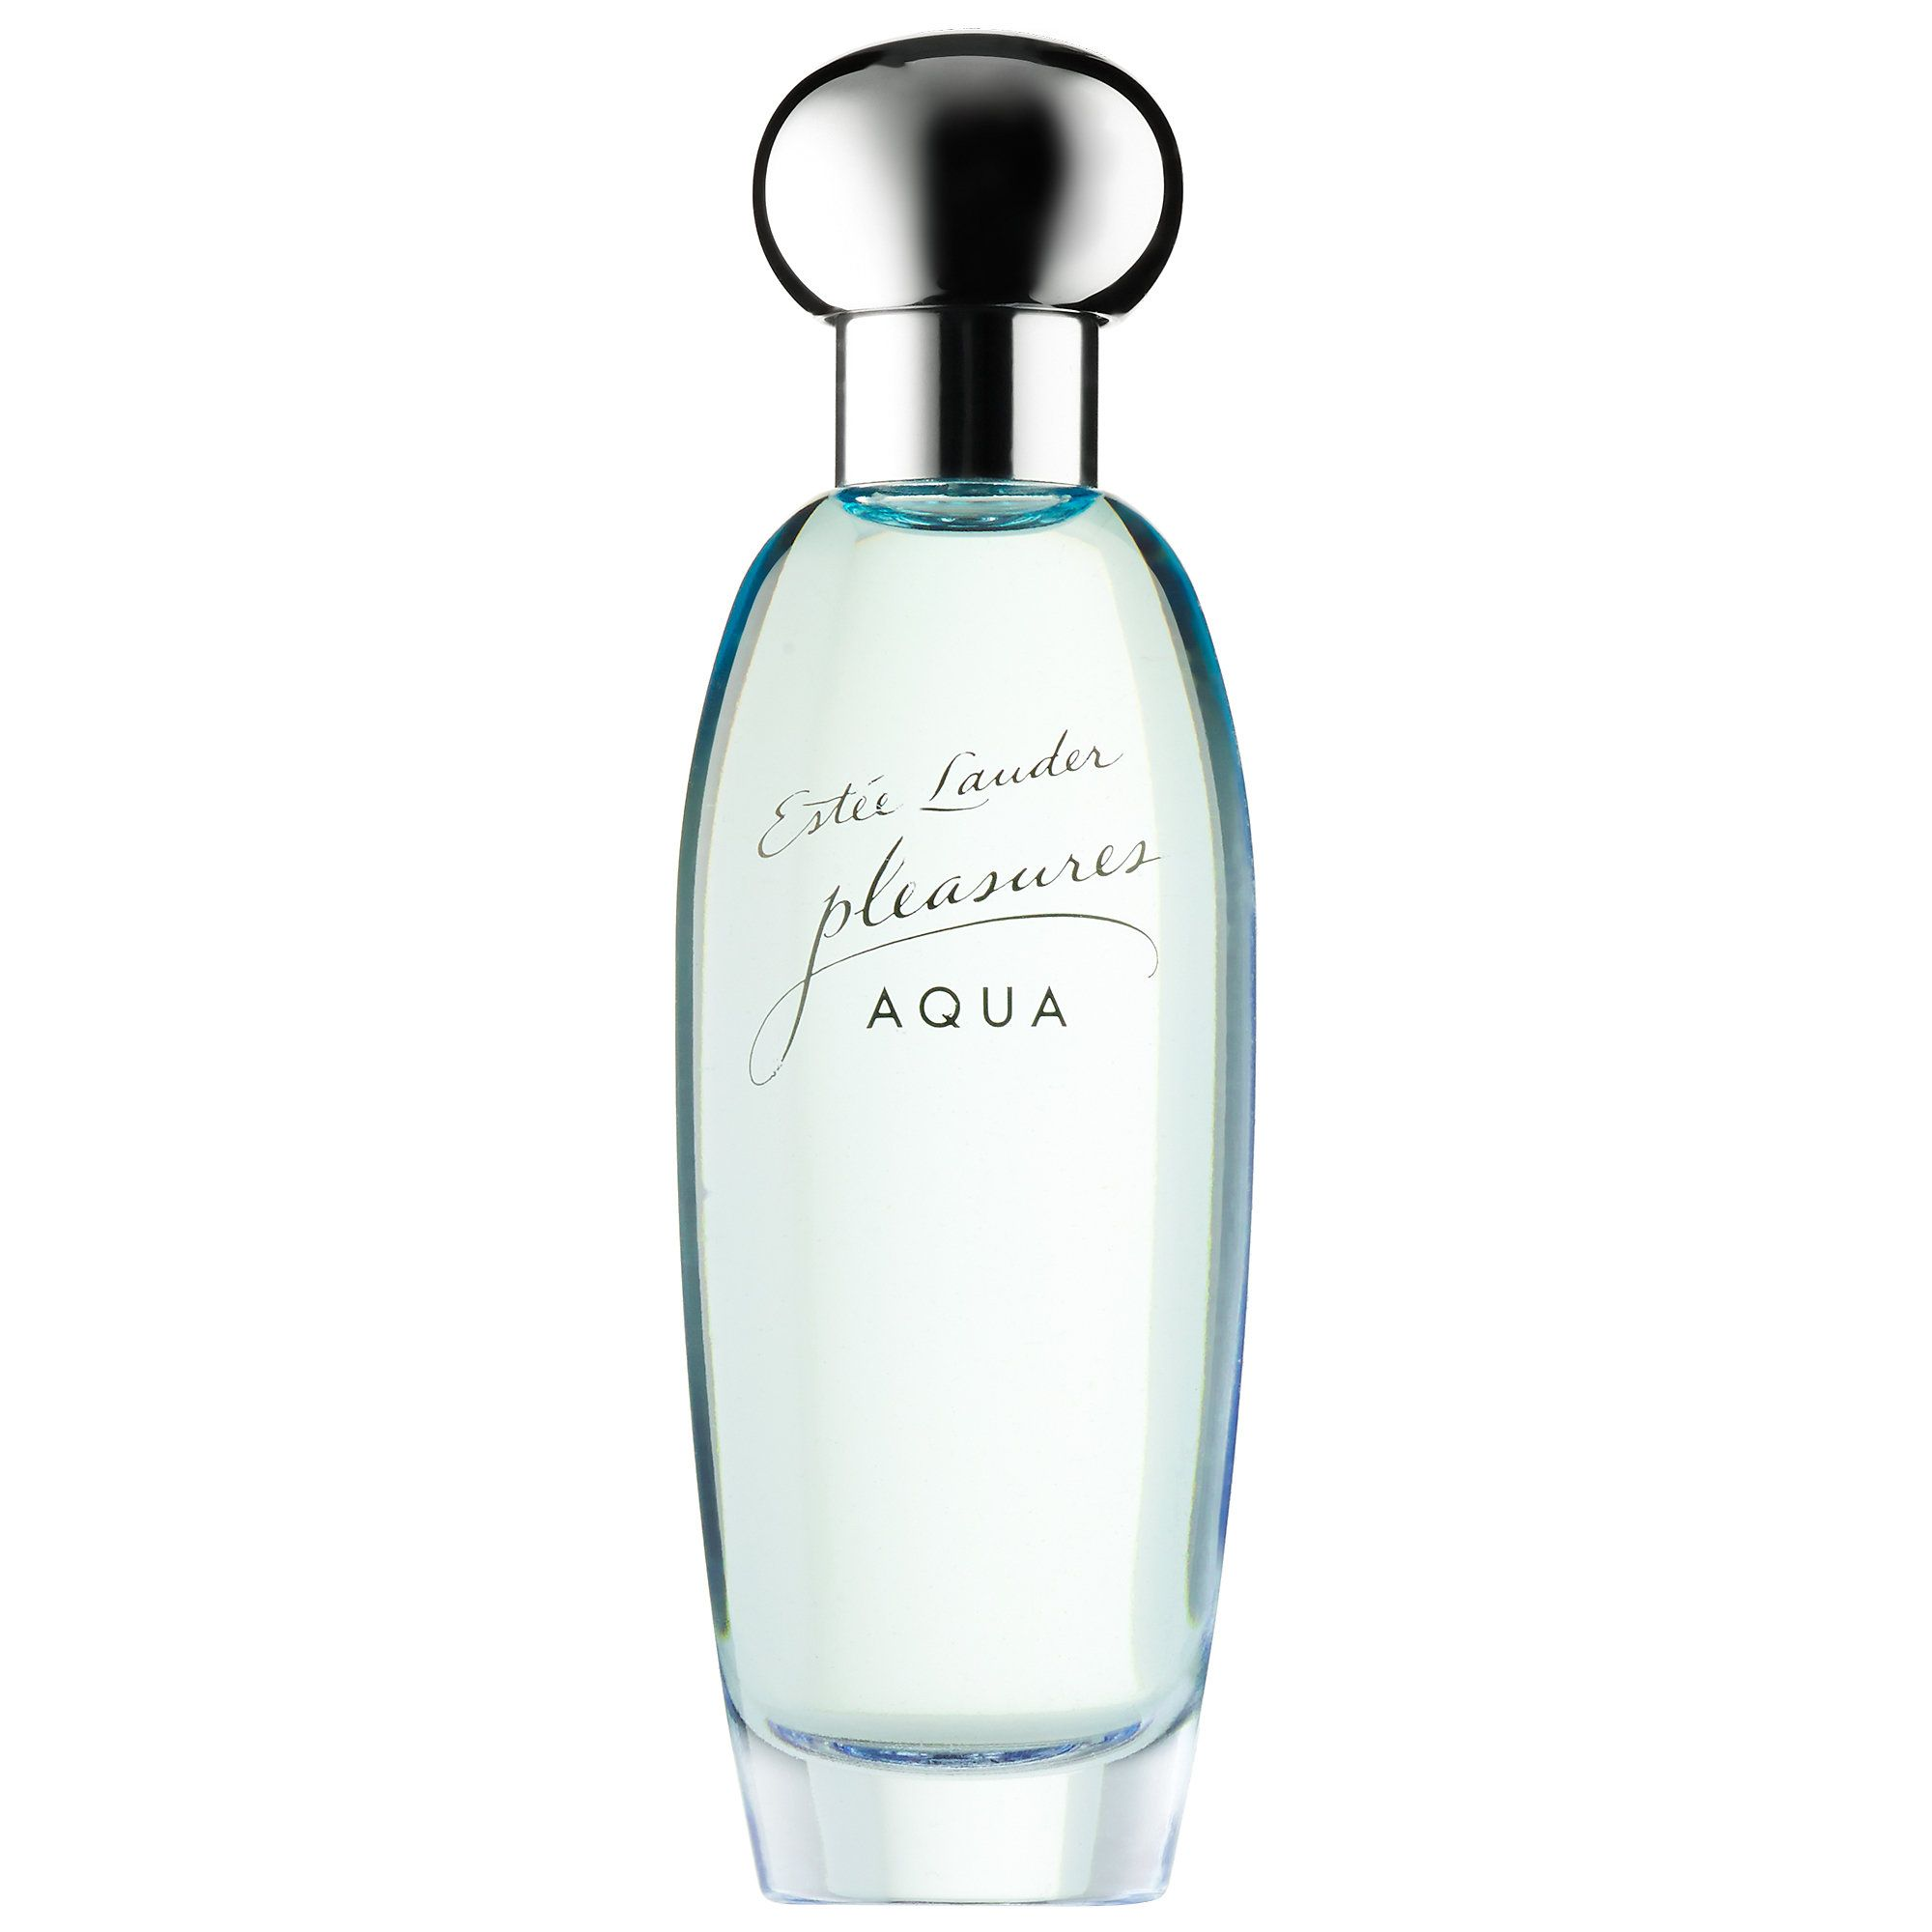 Lauder Estée At Pleasures Aqua Shop Fragrance By SephoraThis R5A4q3jL